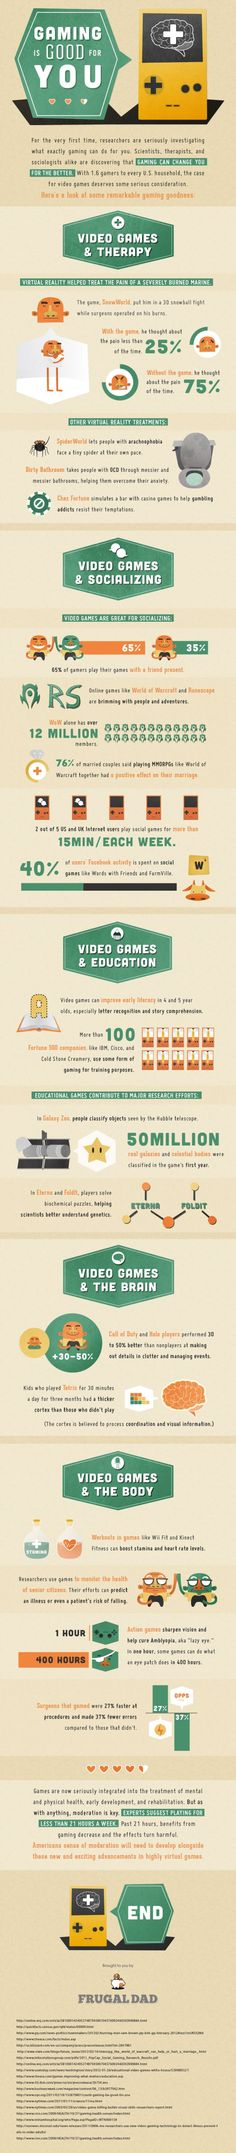 Video game benefits infographic.